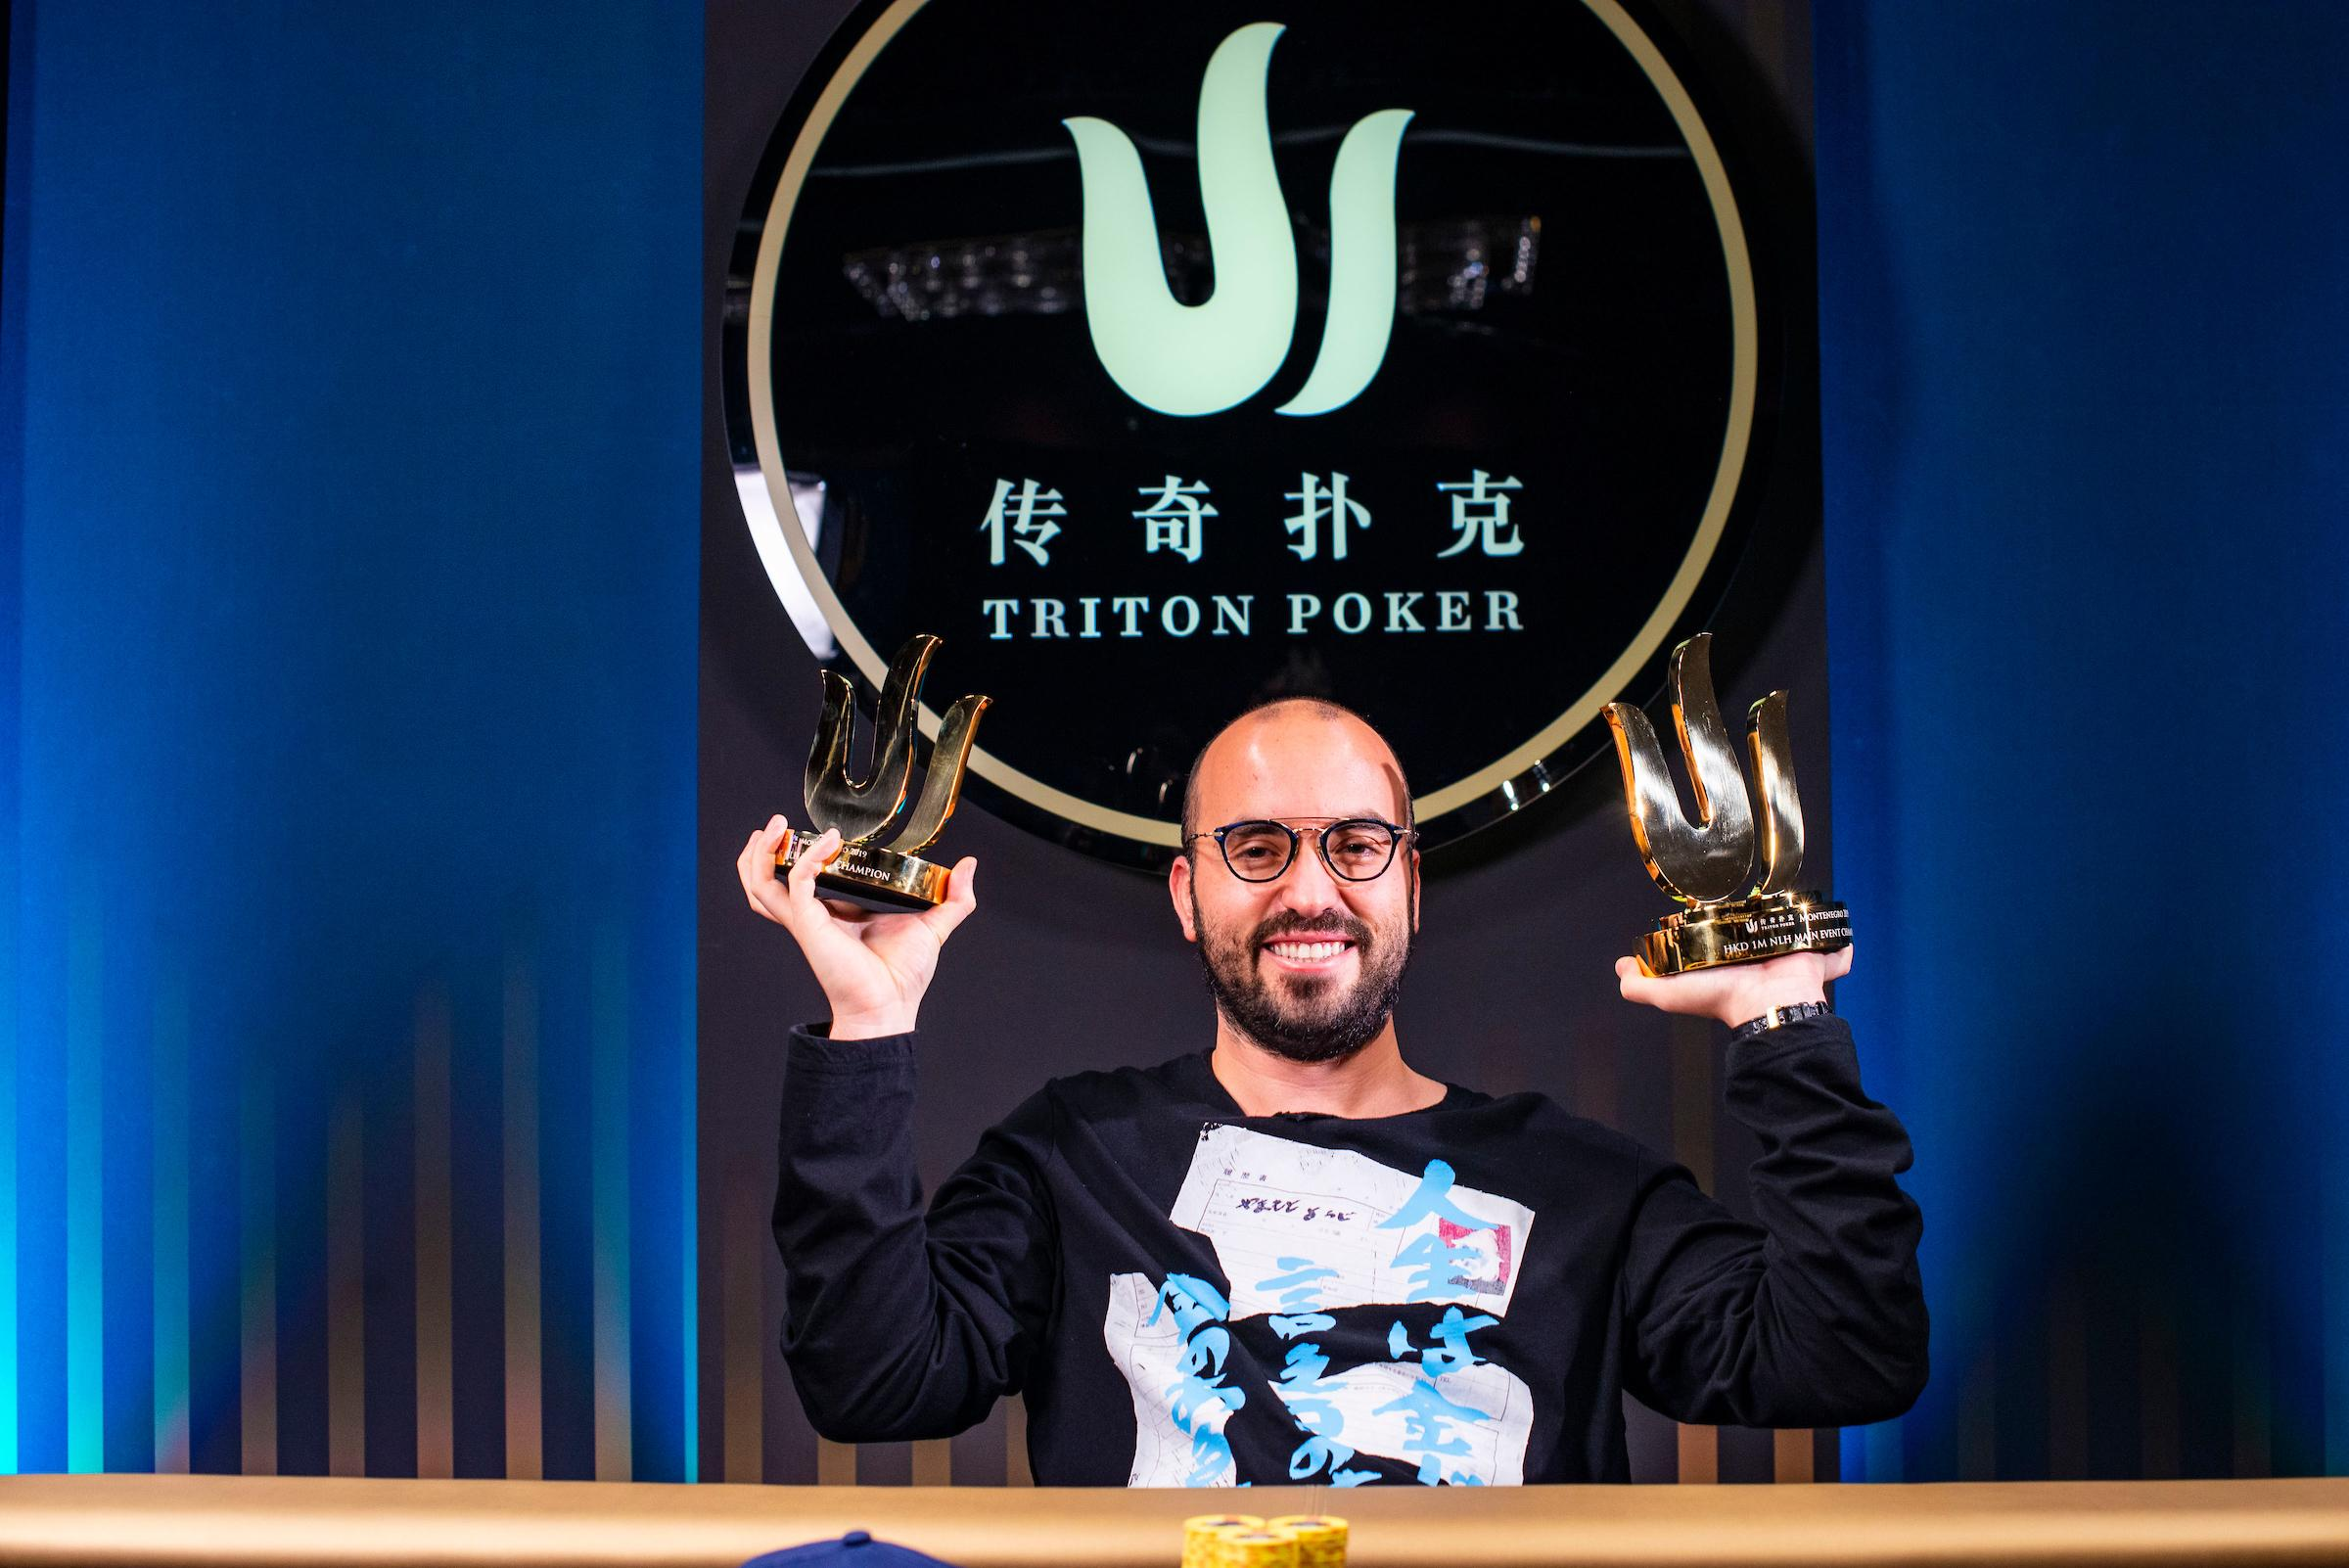 Bryn Kenney wins Triton Series Montenegro 2019 Main Event, Danny Tang runner-up